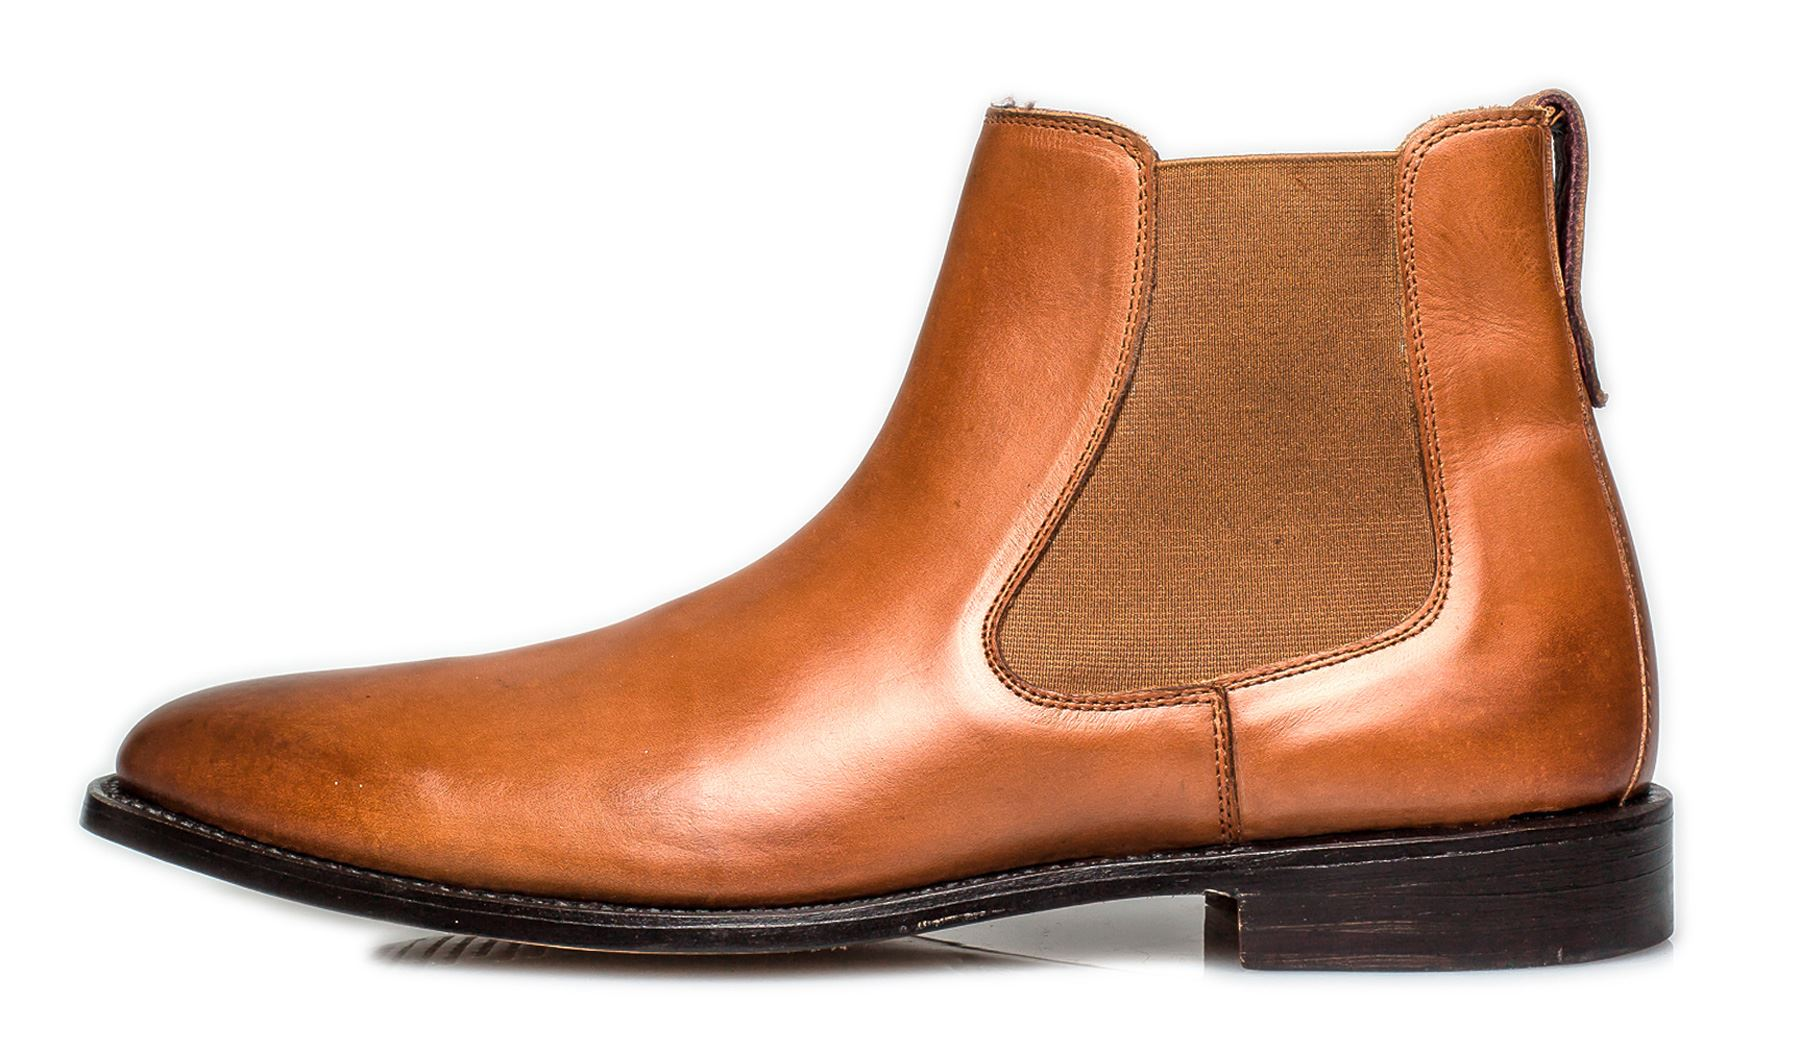 8b8a968429c Details about London Brogues Harvey Chelsea Goodyear Welted Mens Leather  Boots